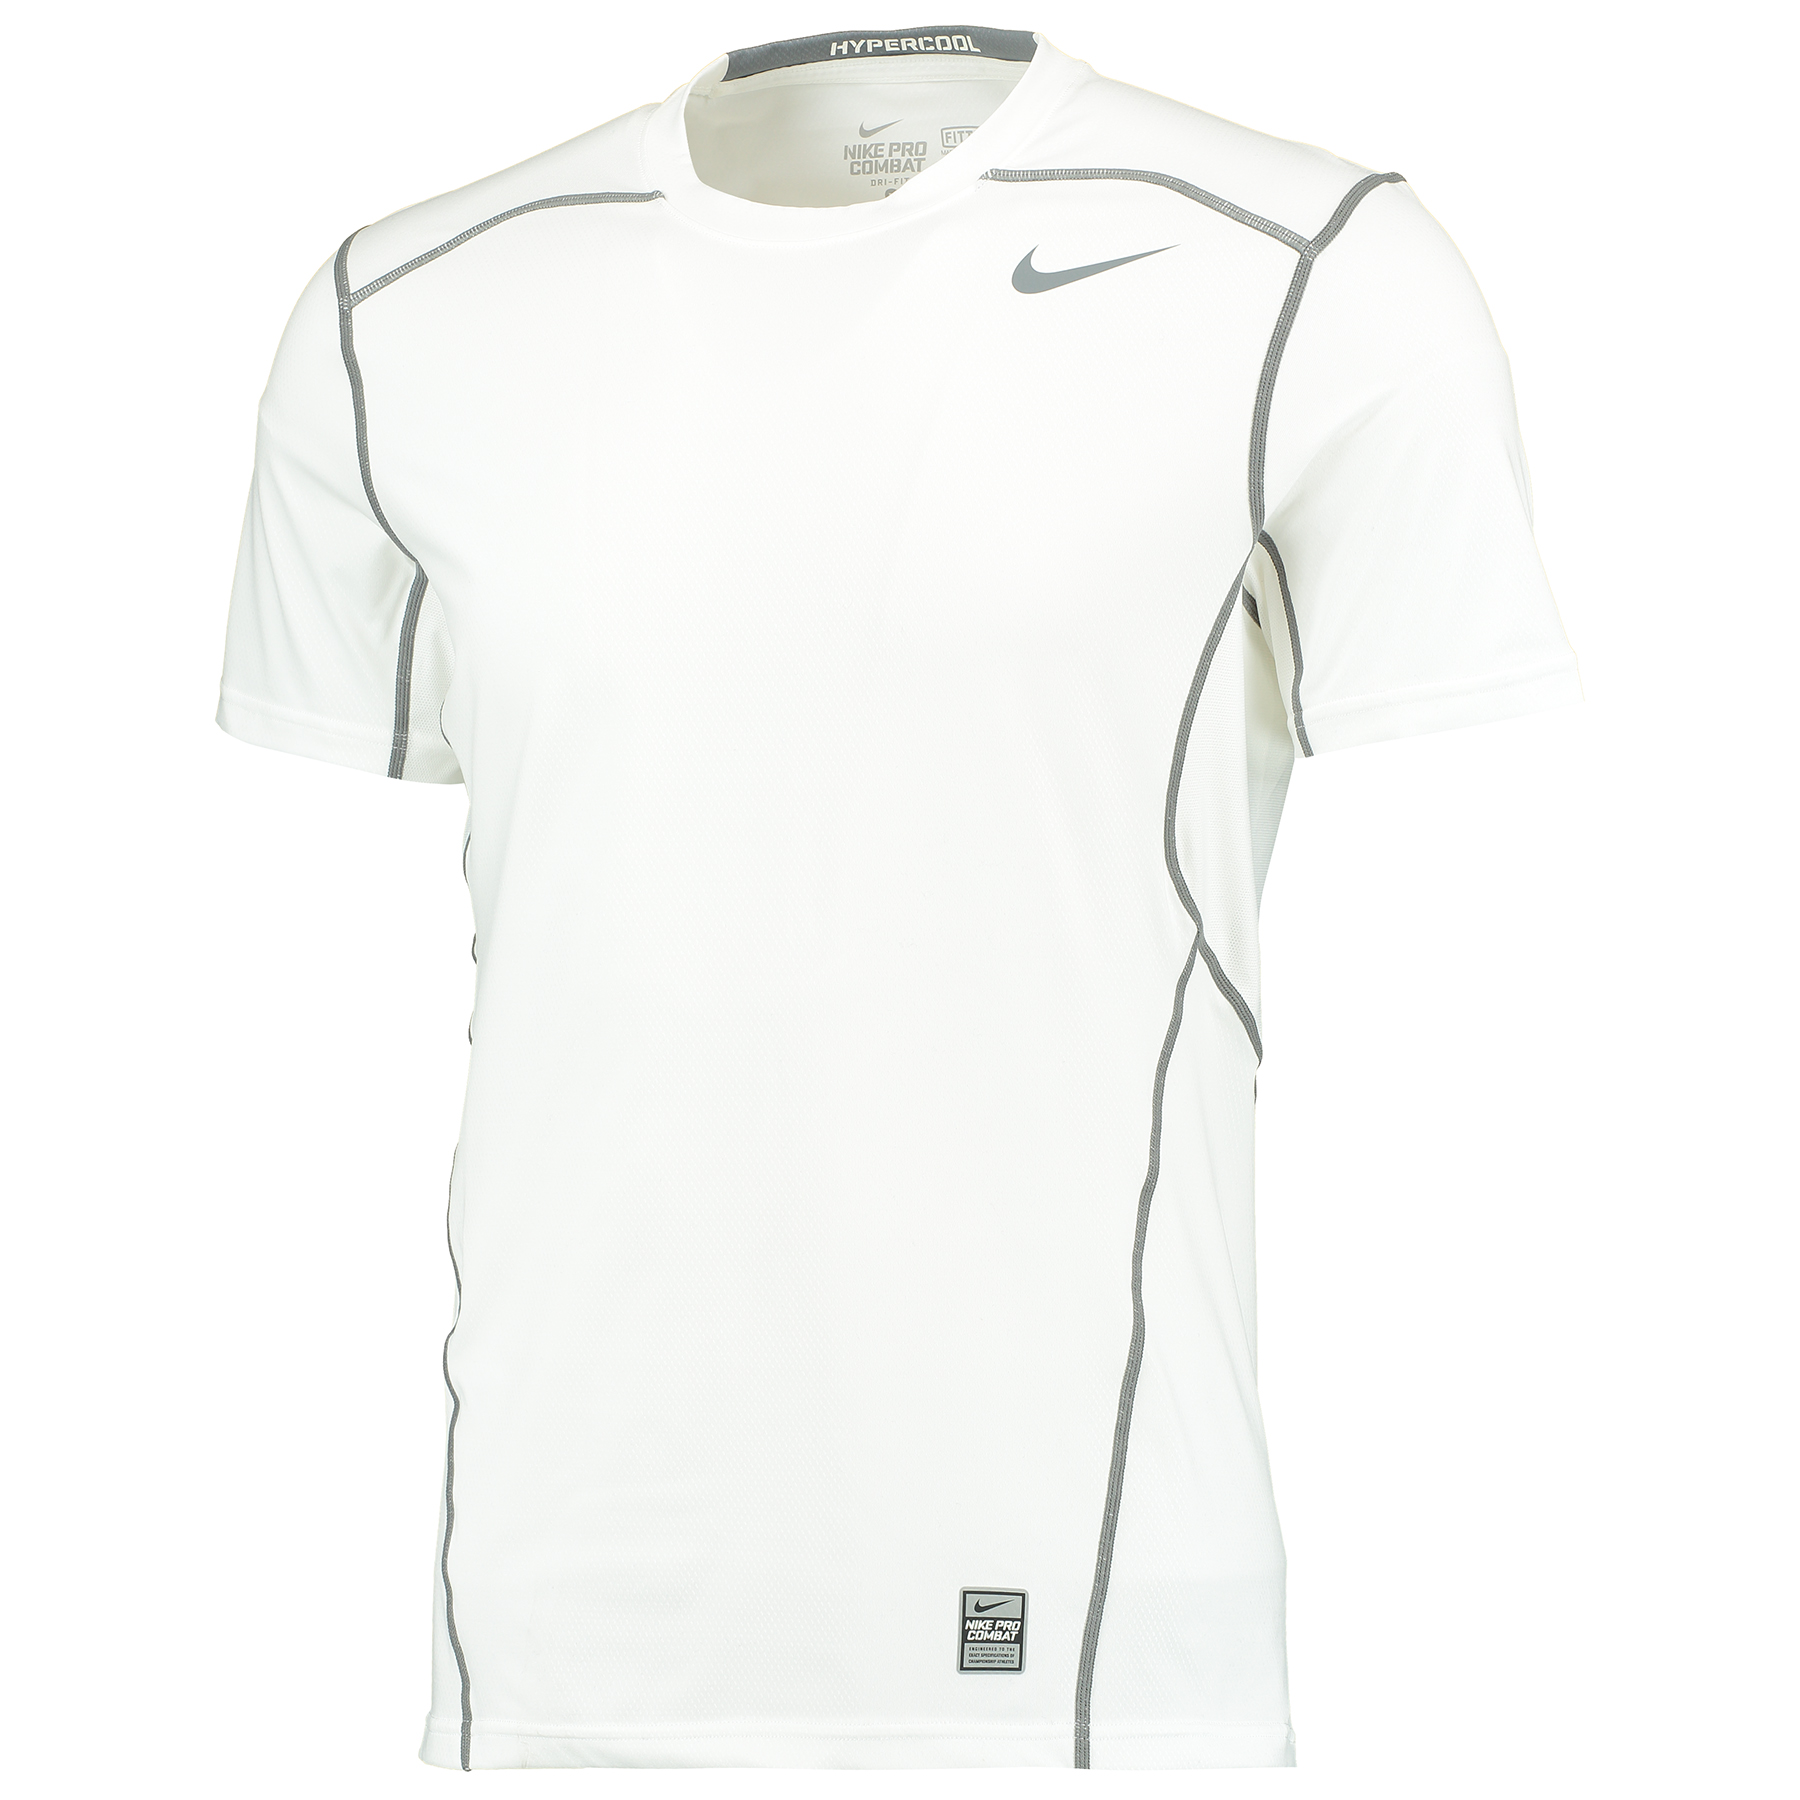 Nike Pro Combat Hypercool Baselayer Top White